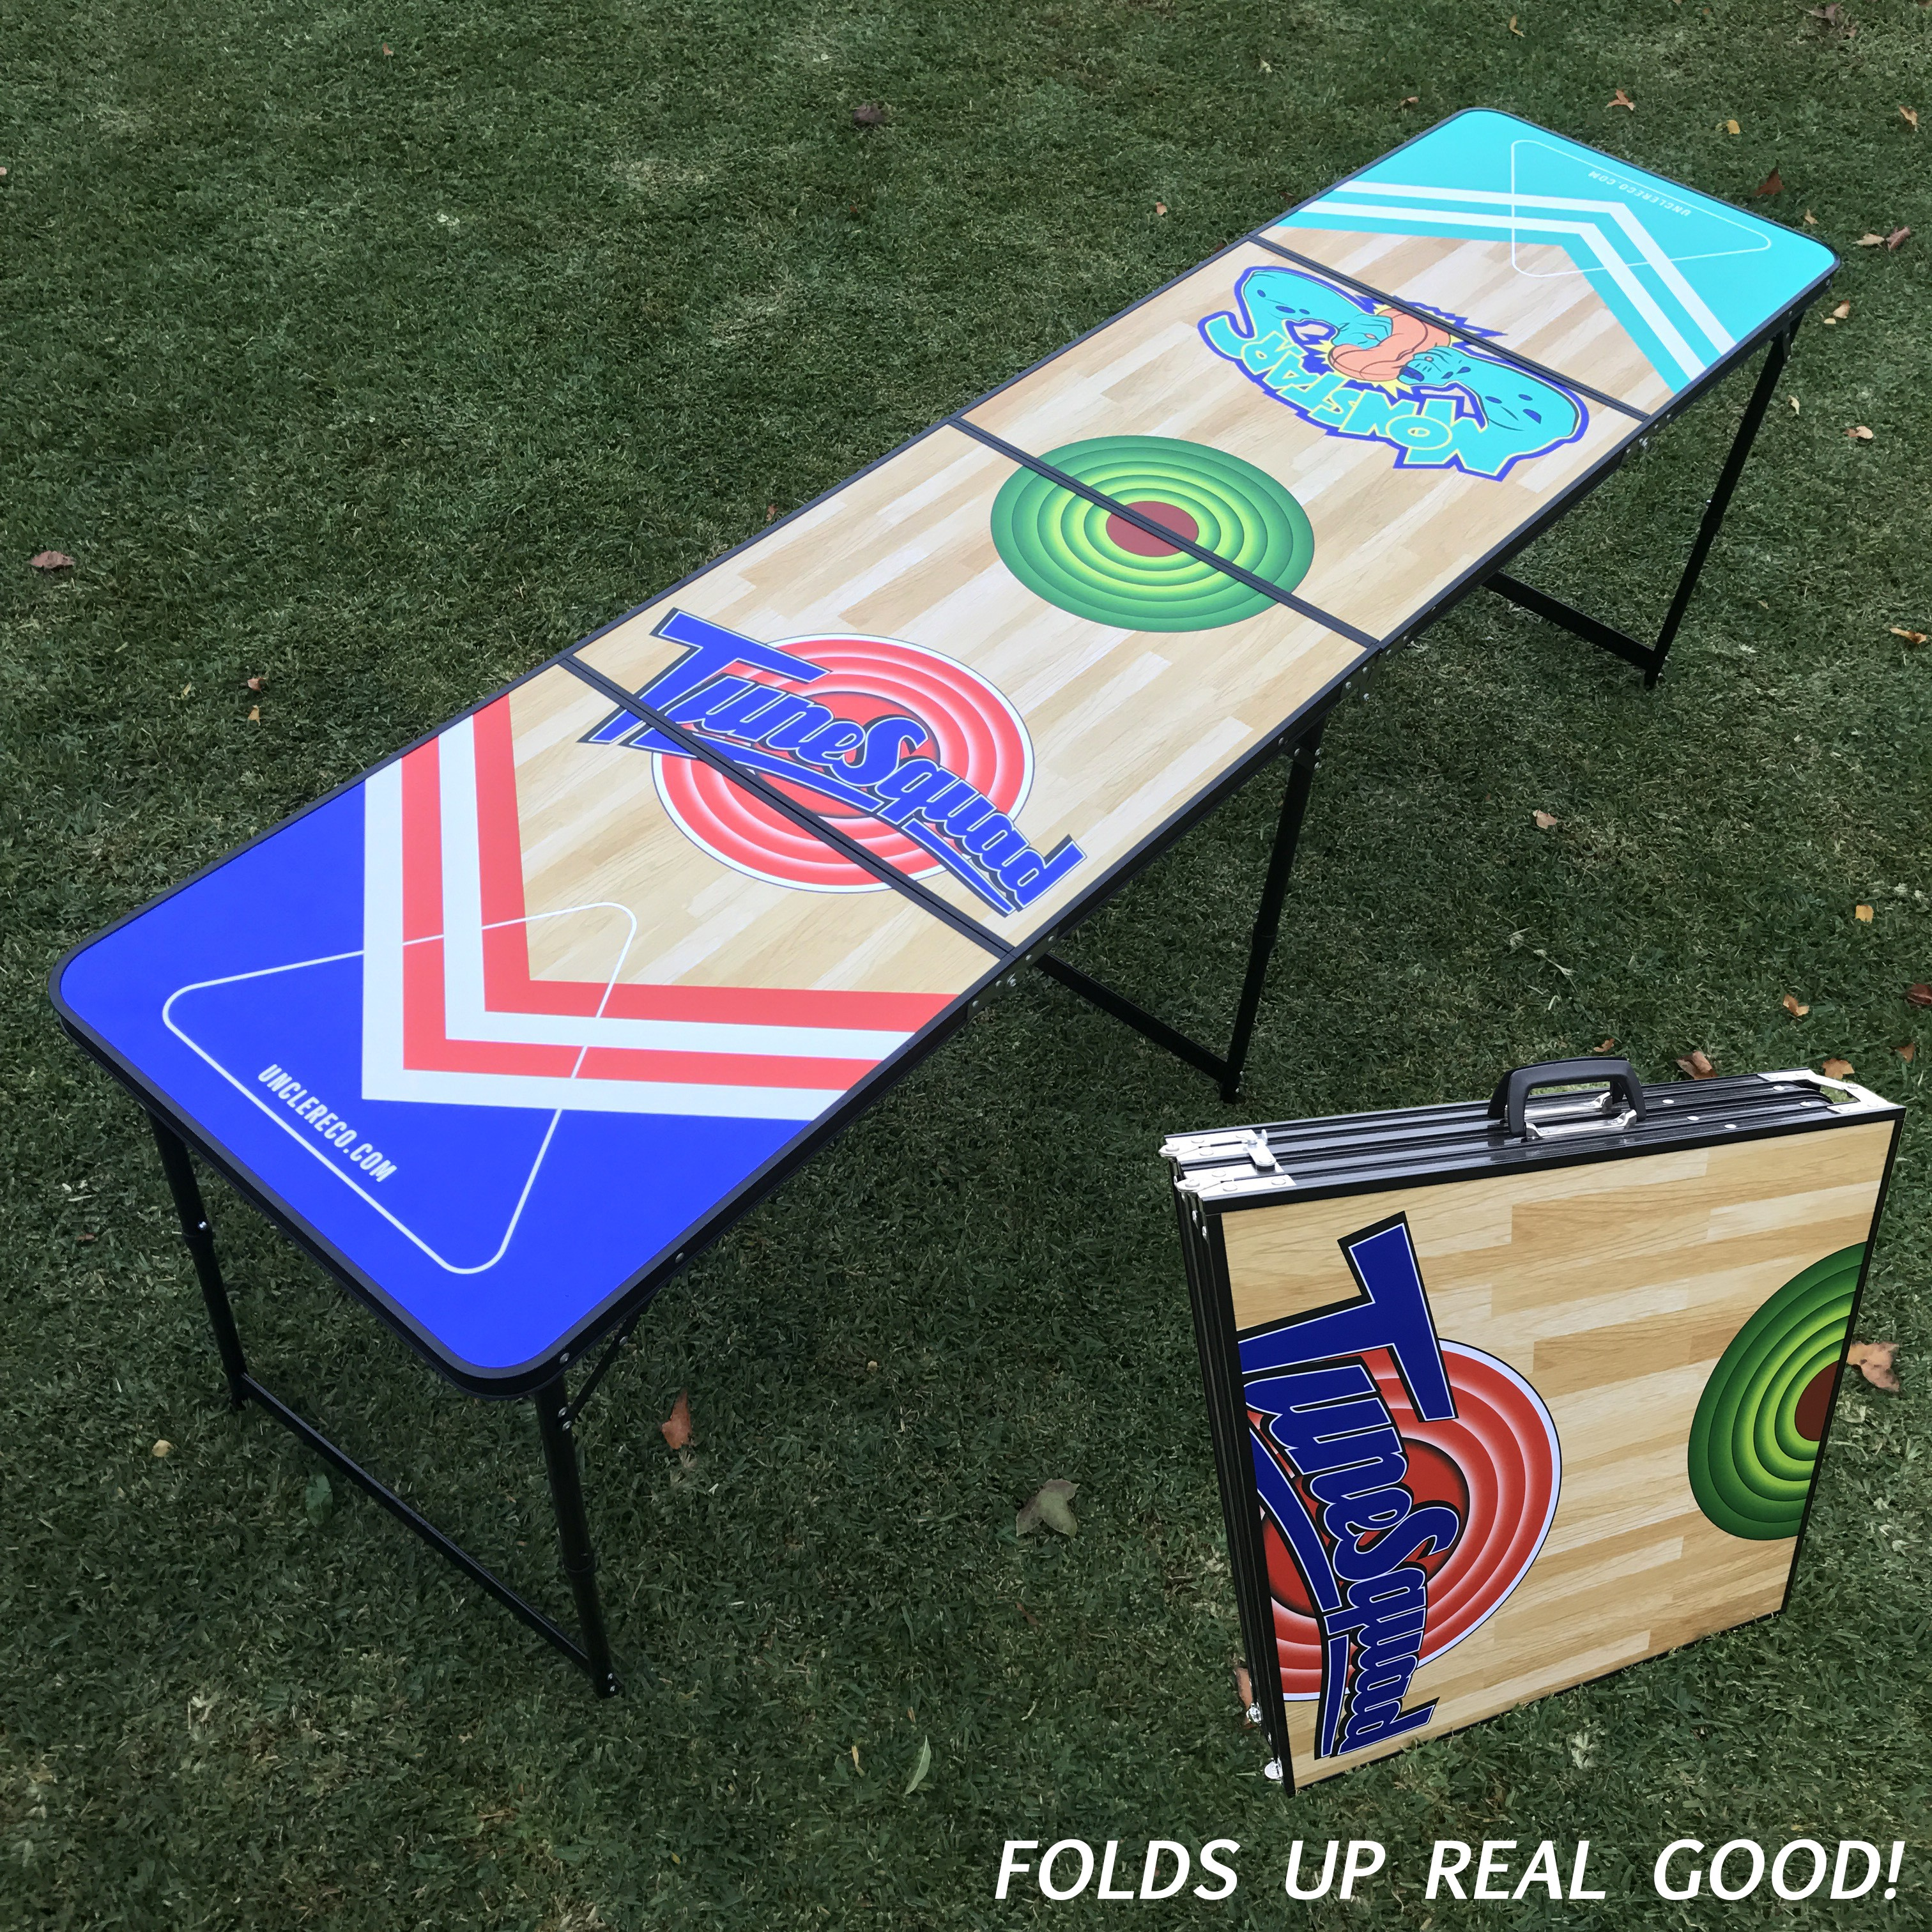 TUNE SQUAD VS MONSTARS FOLDING BEER PONG TABLE